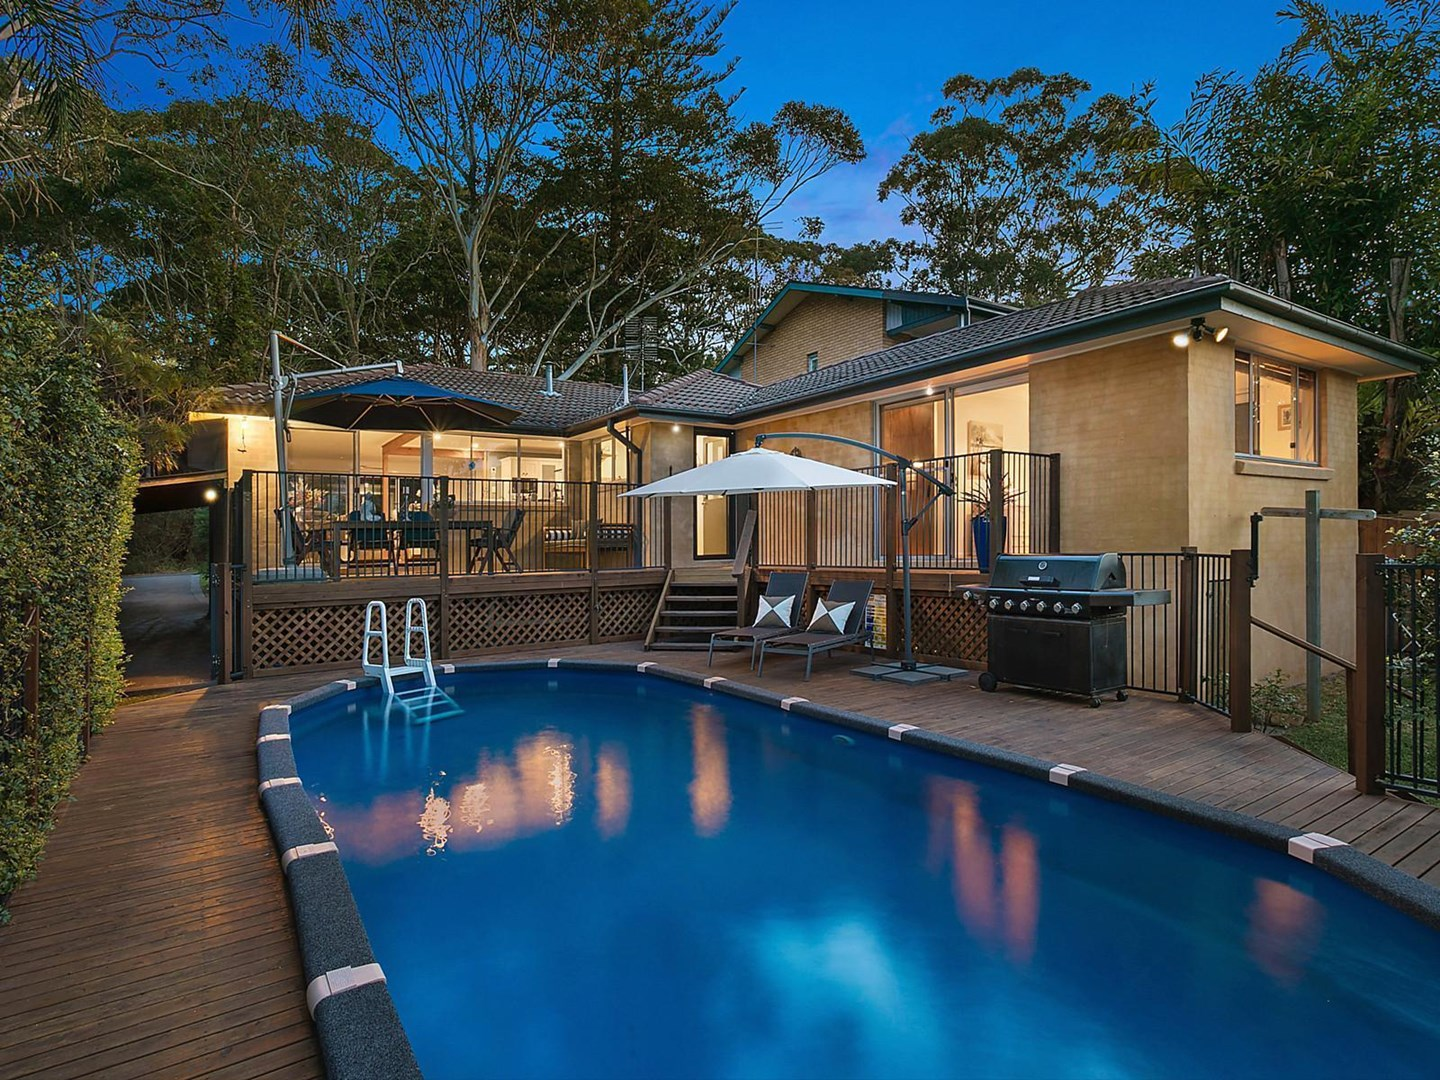 For Sale, price  guide $875,000  - $920,000